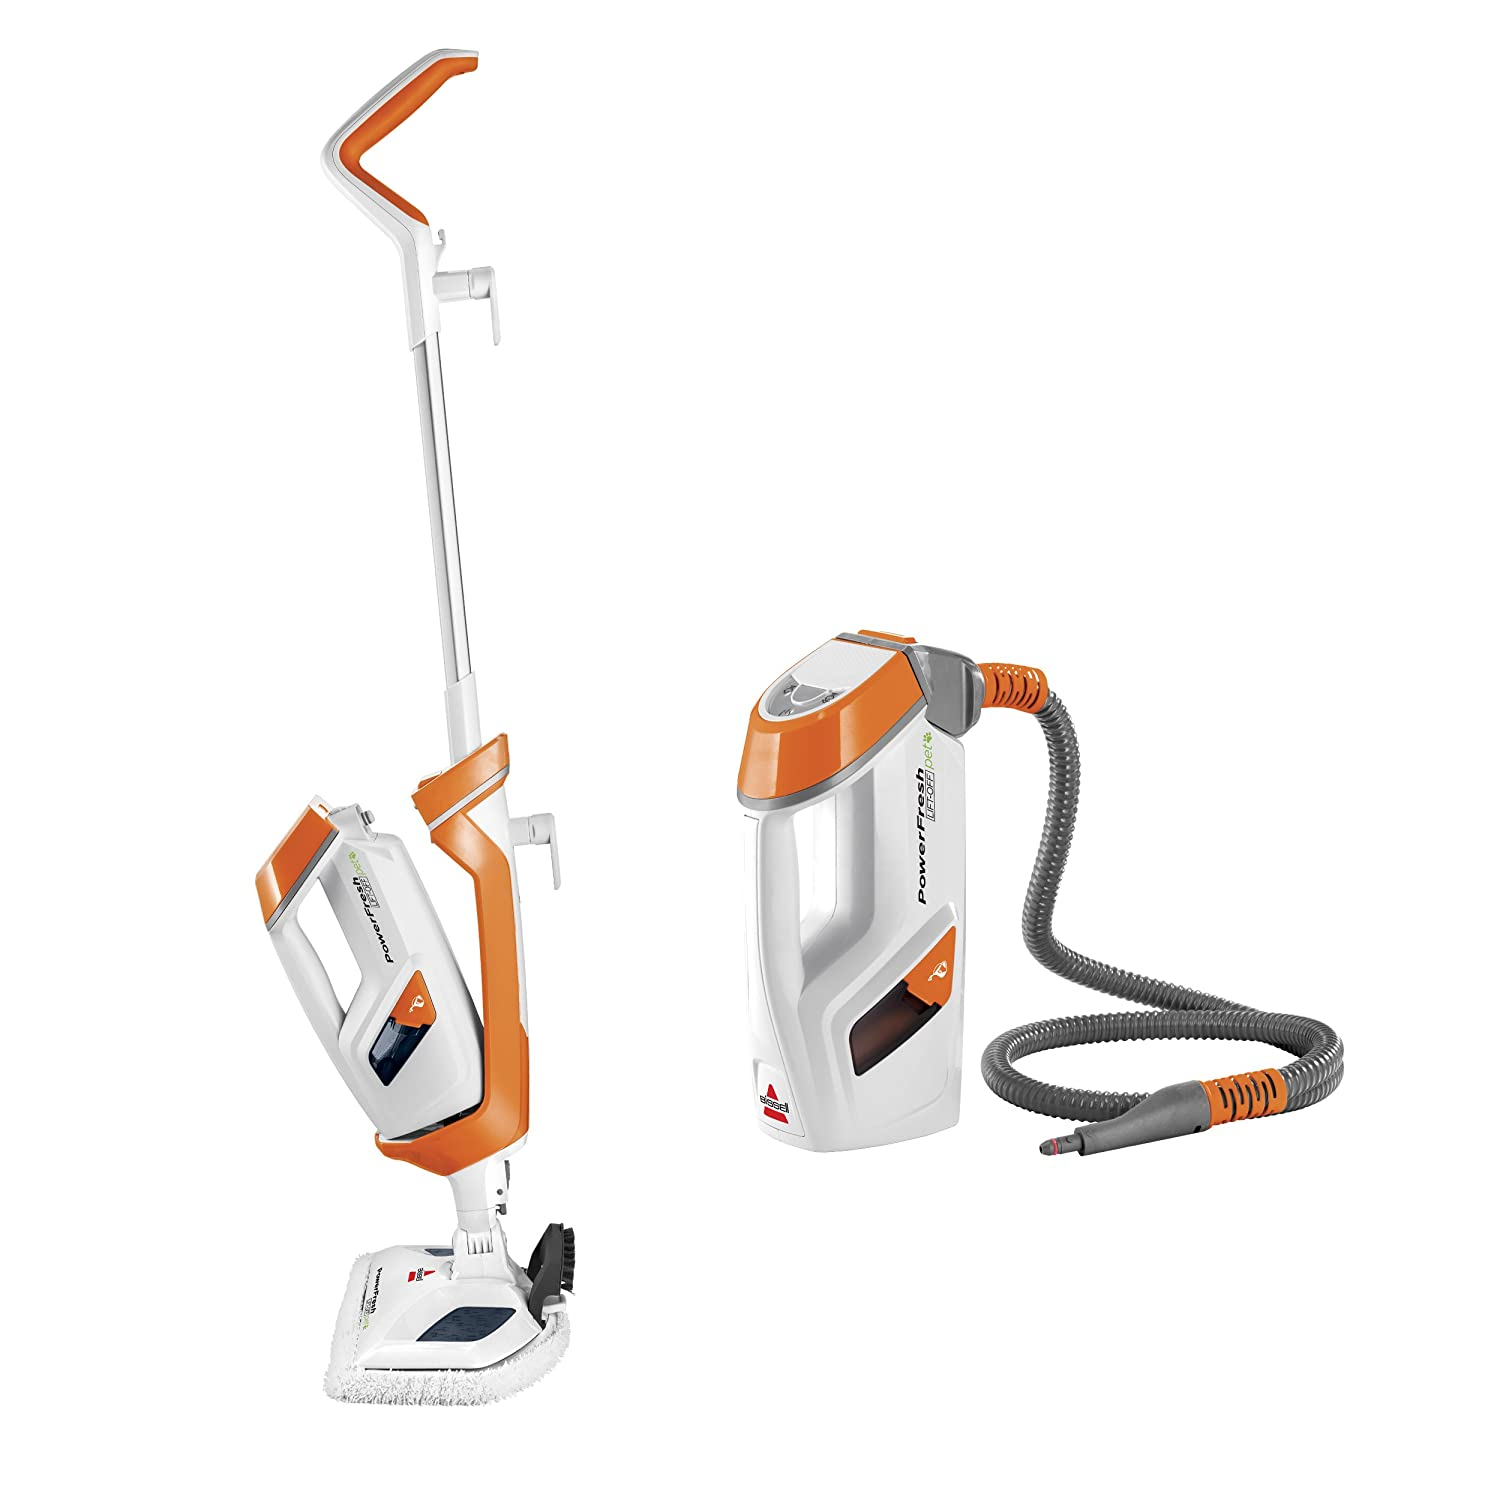 Best Steam Cleaner for Tile 9